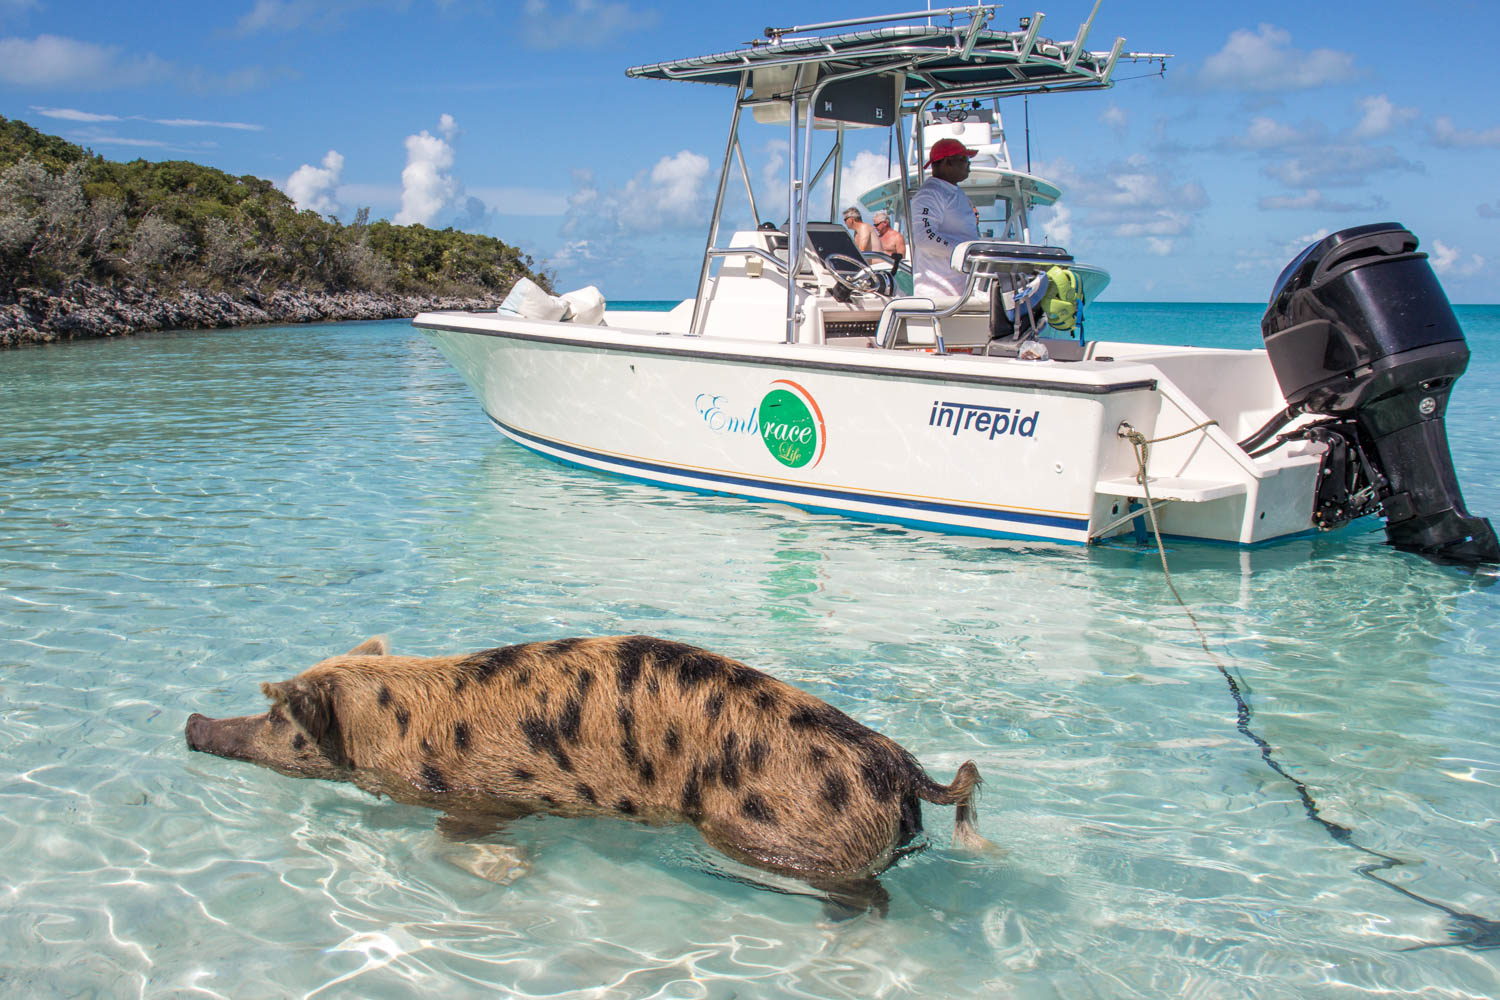 Go on Pig Island tours to live out a dream! Pig Beach excursion from Nassau to Pig Beach Bahamas is available every morning.